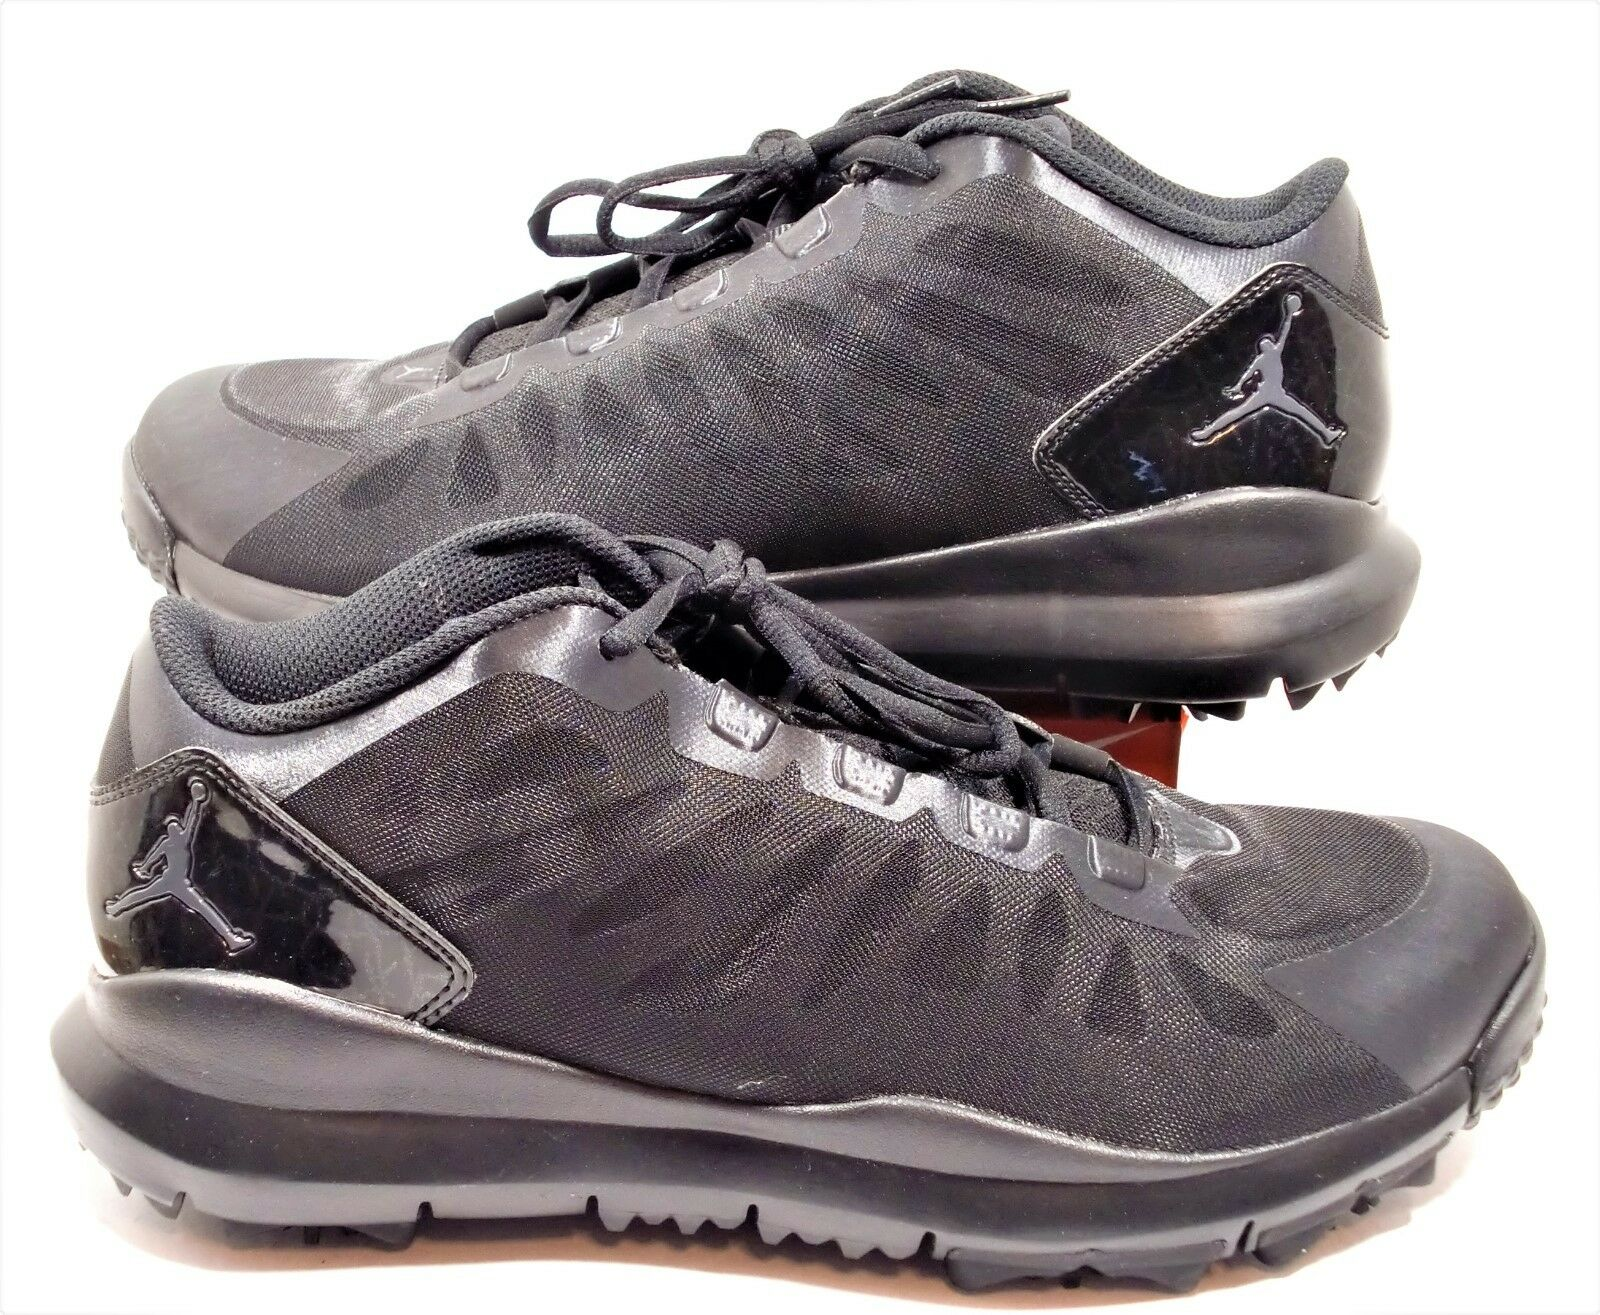 a70820e79ec4 Nike Air Jordan Dominate Pro Golf Shoes Men s Black Blackout 707516 ...